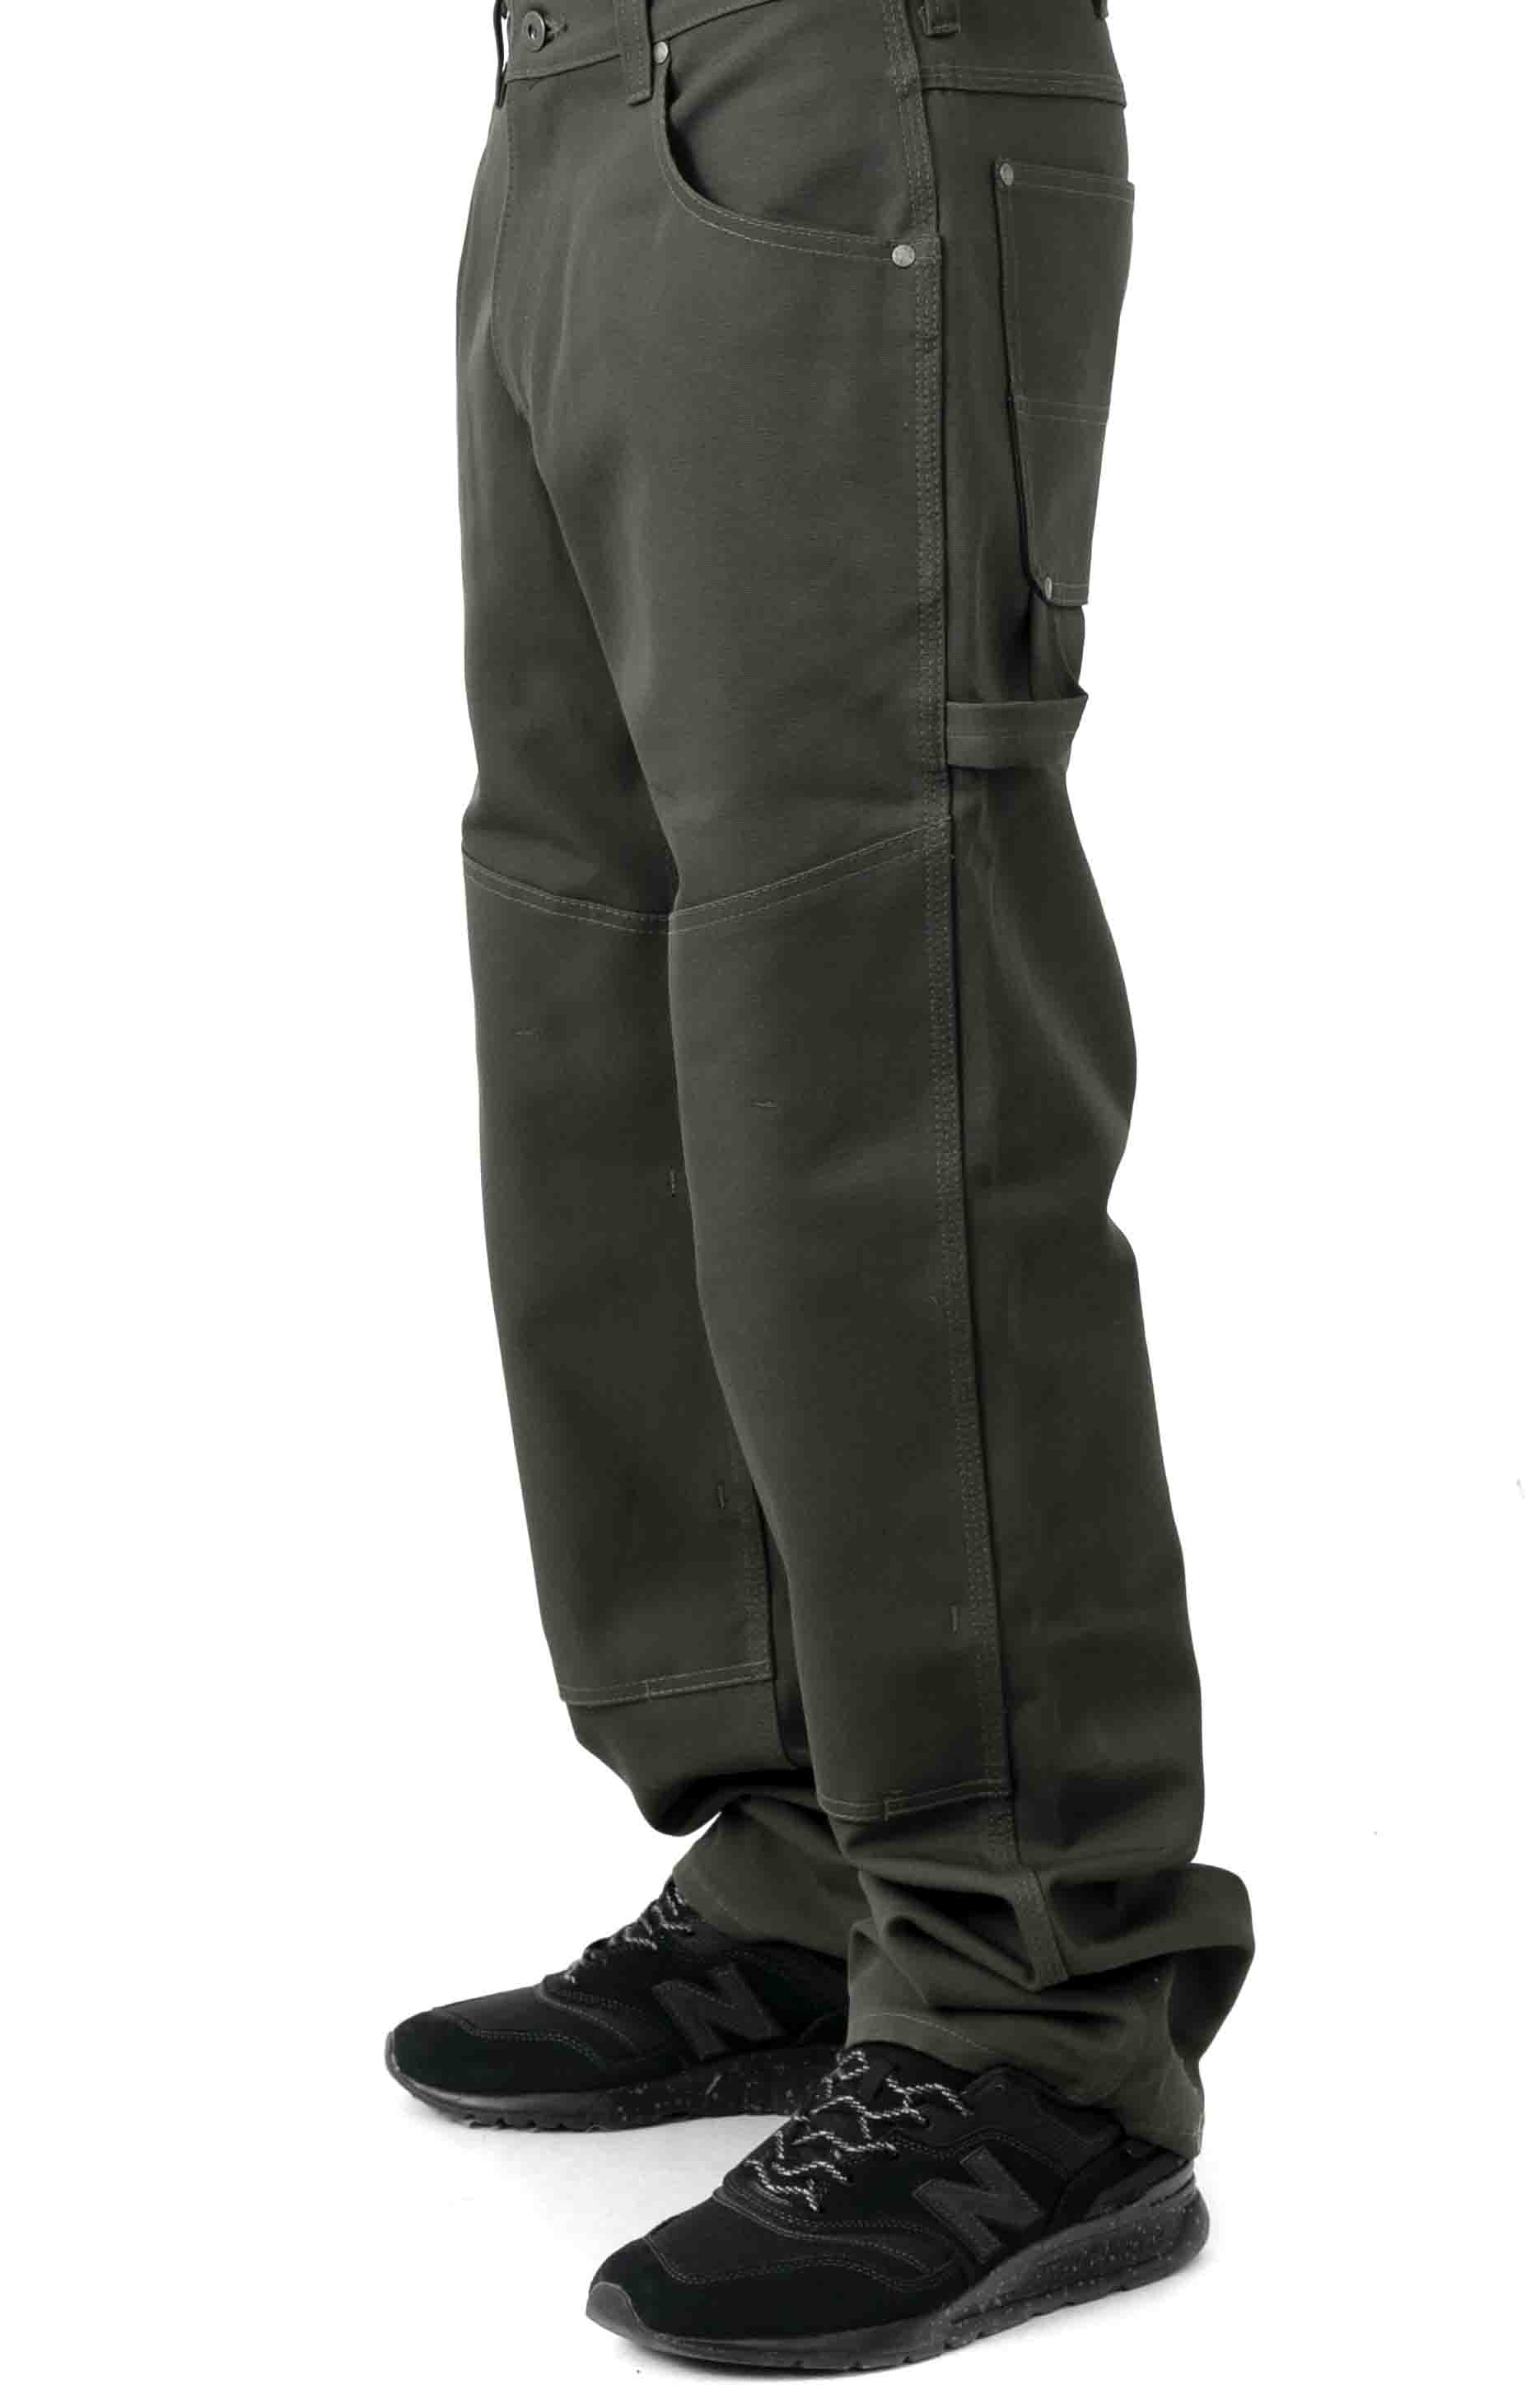 C.C.F. Utility Canvas Pant - Cannonball Green  2